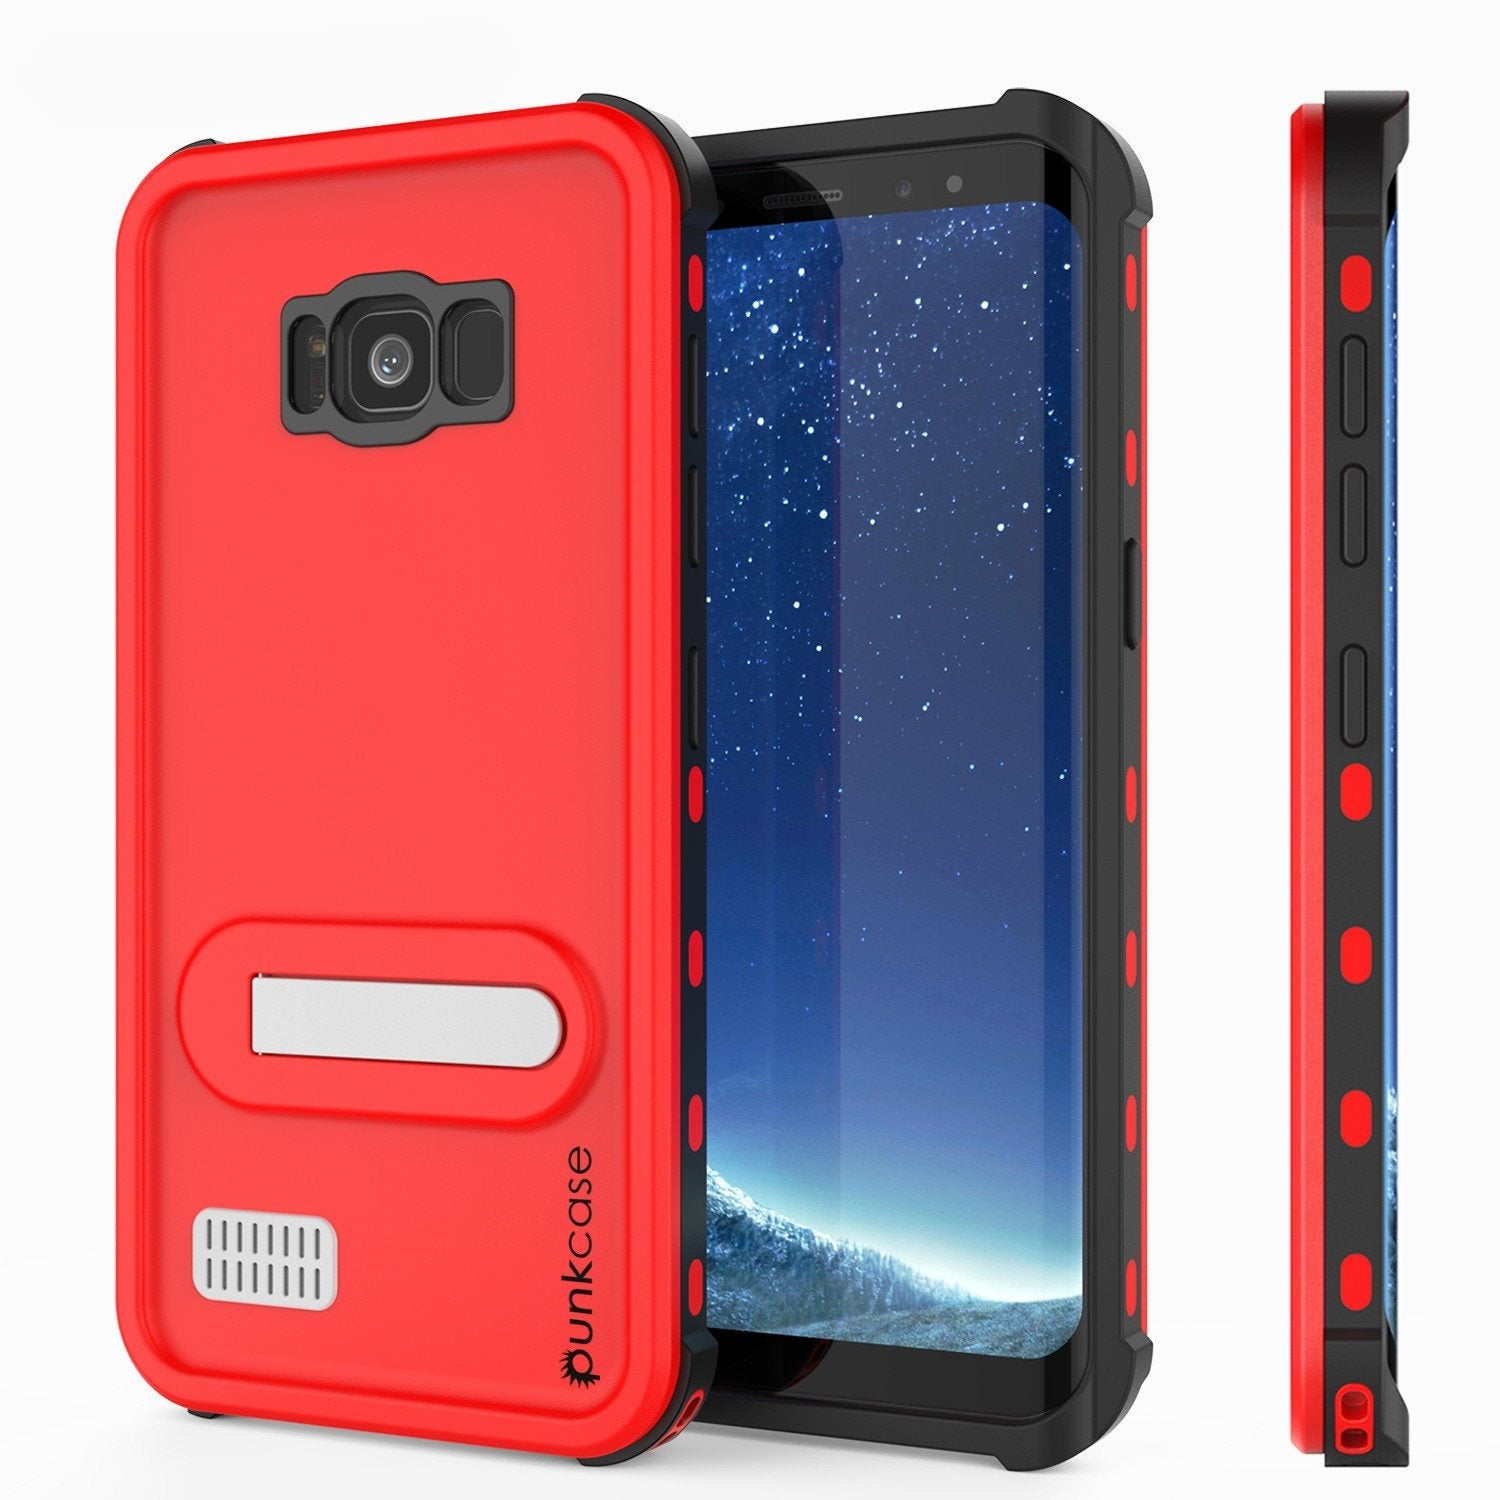 Galaxy S8 Waterproof Case, Punkcase [KickStud Series] [Slim Fit] [IP68 Certified] [Shockproof] [Snowproof] Armor Cover W/ Built-In Kickstand [RED]